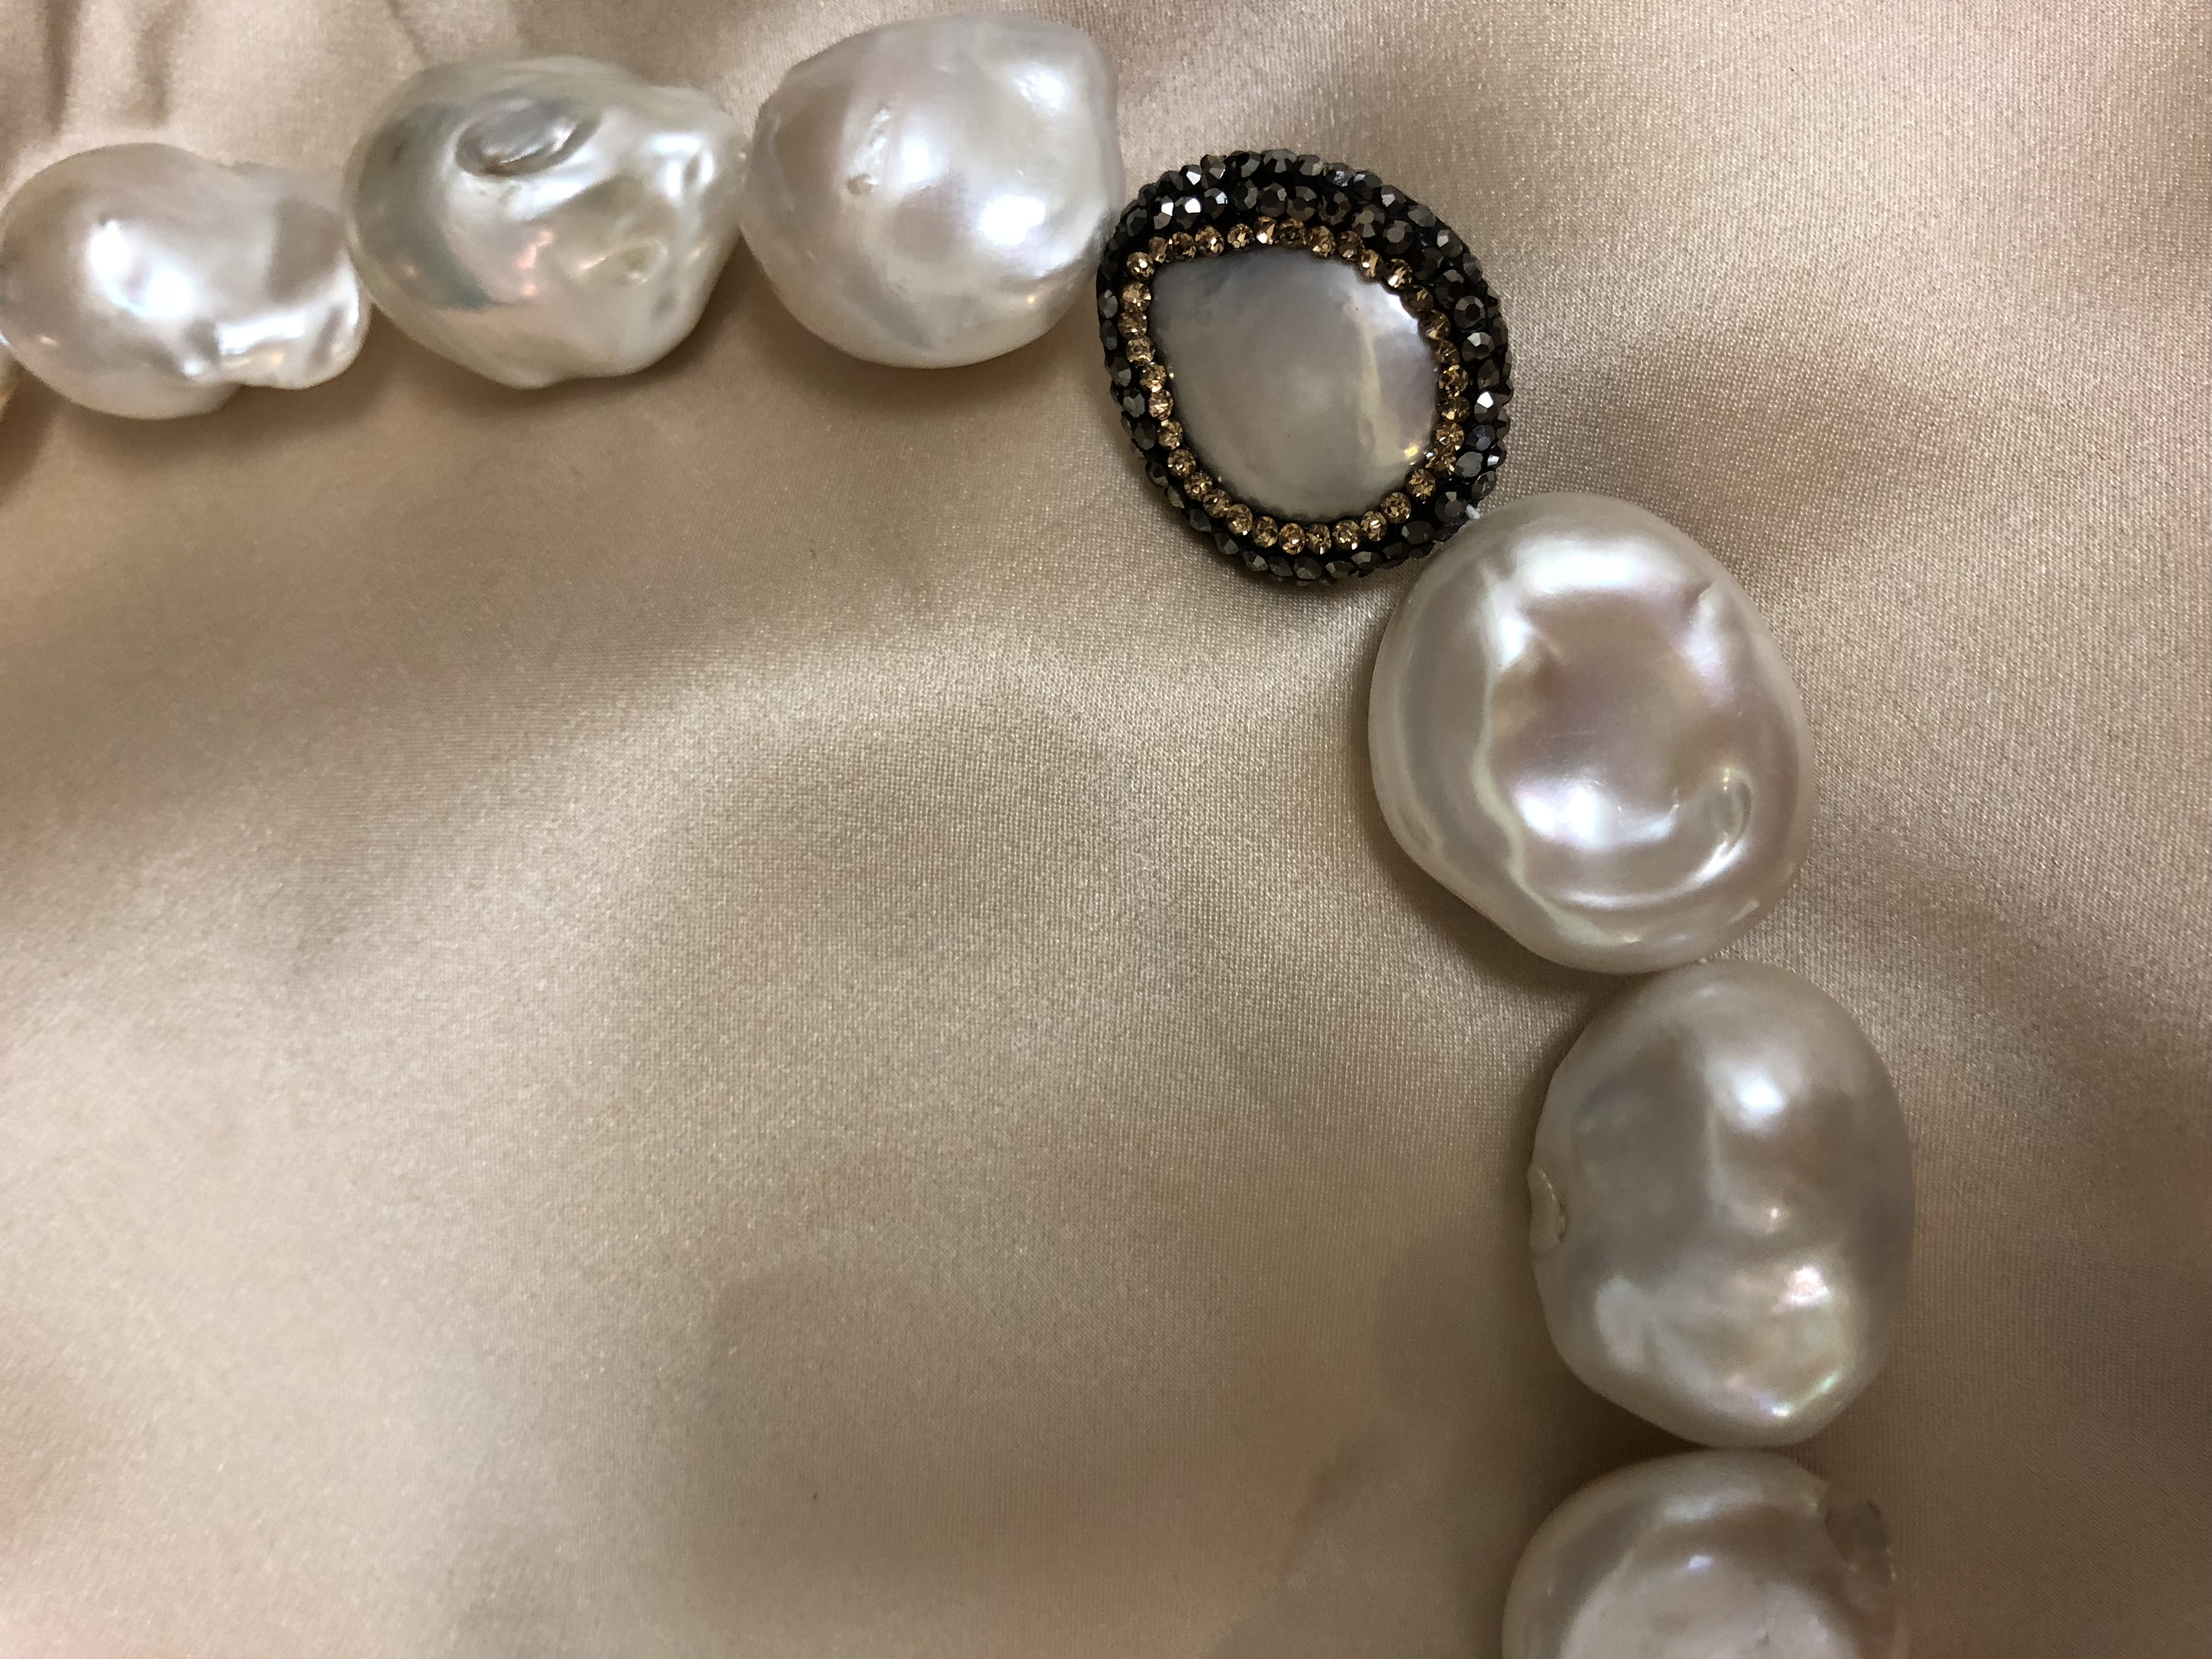 Mother Of Pearl >> Baroque Freshwater Pearl Necklace with Mother of Pearl - Luxury Lustre